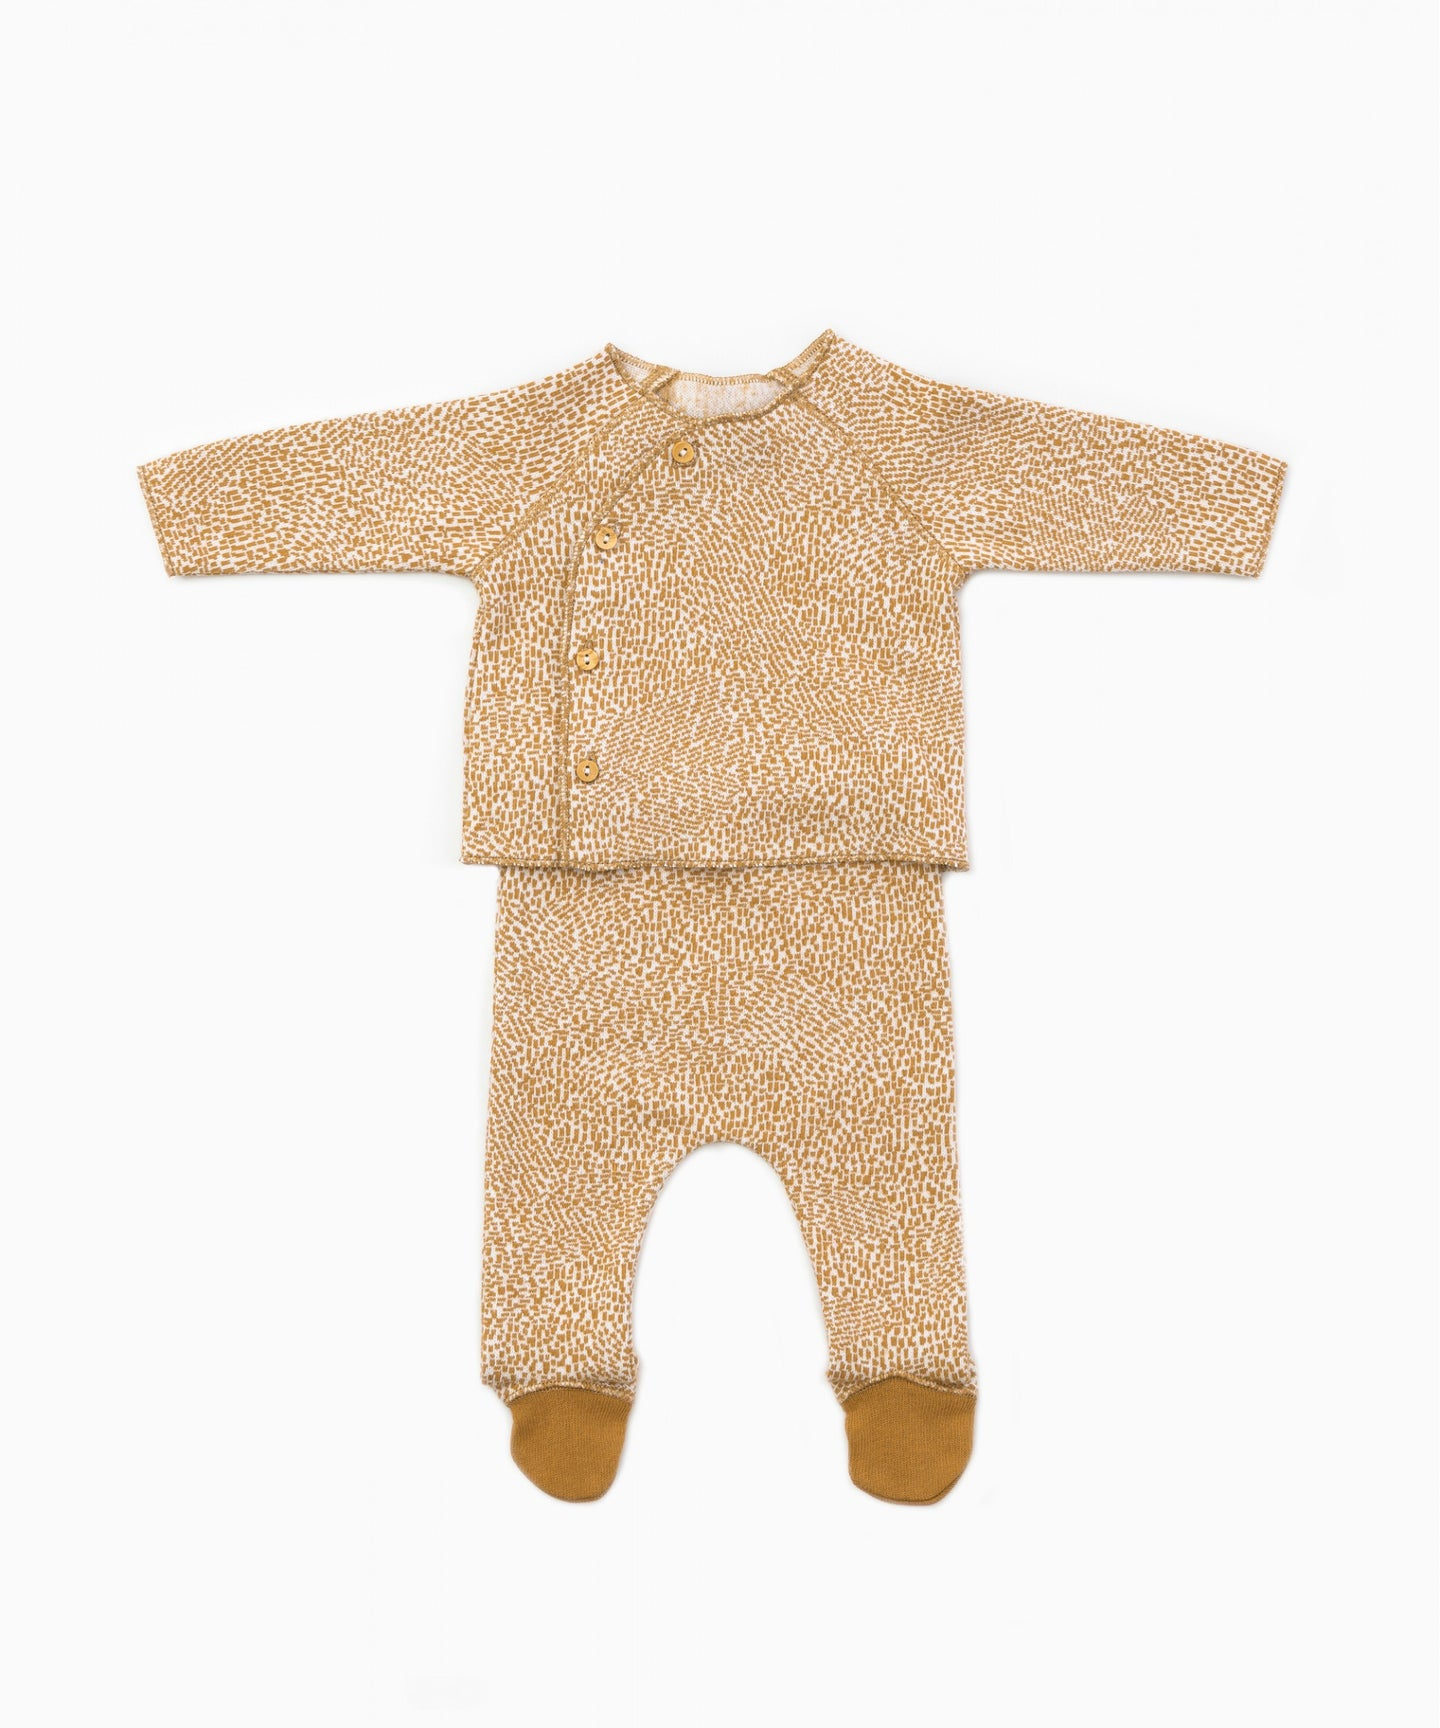 Play Up - Organic Cotton Top & Footed Bottoms Set - Raw